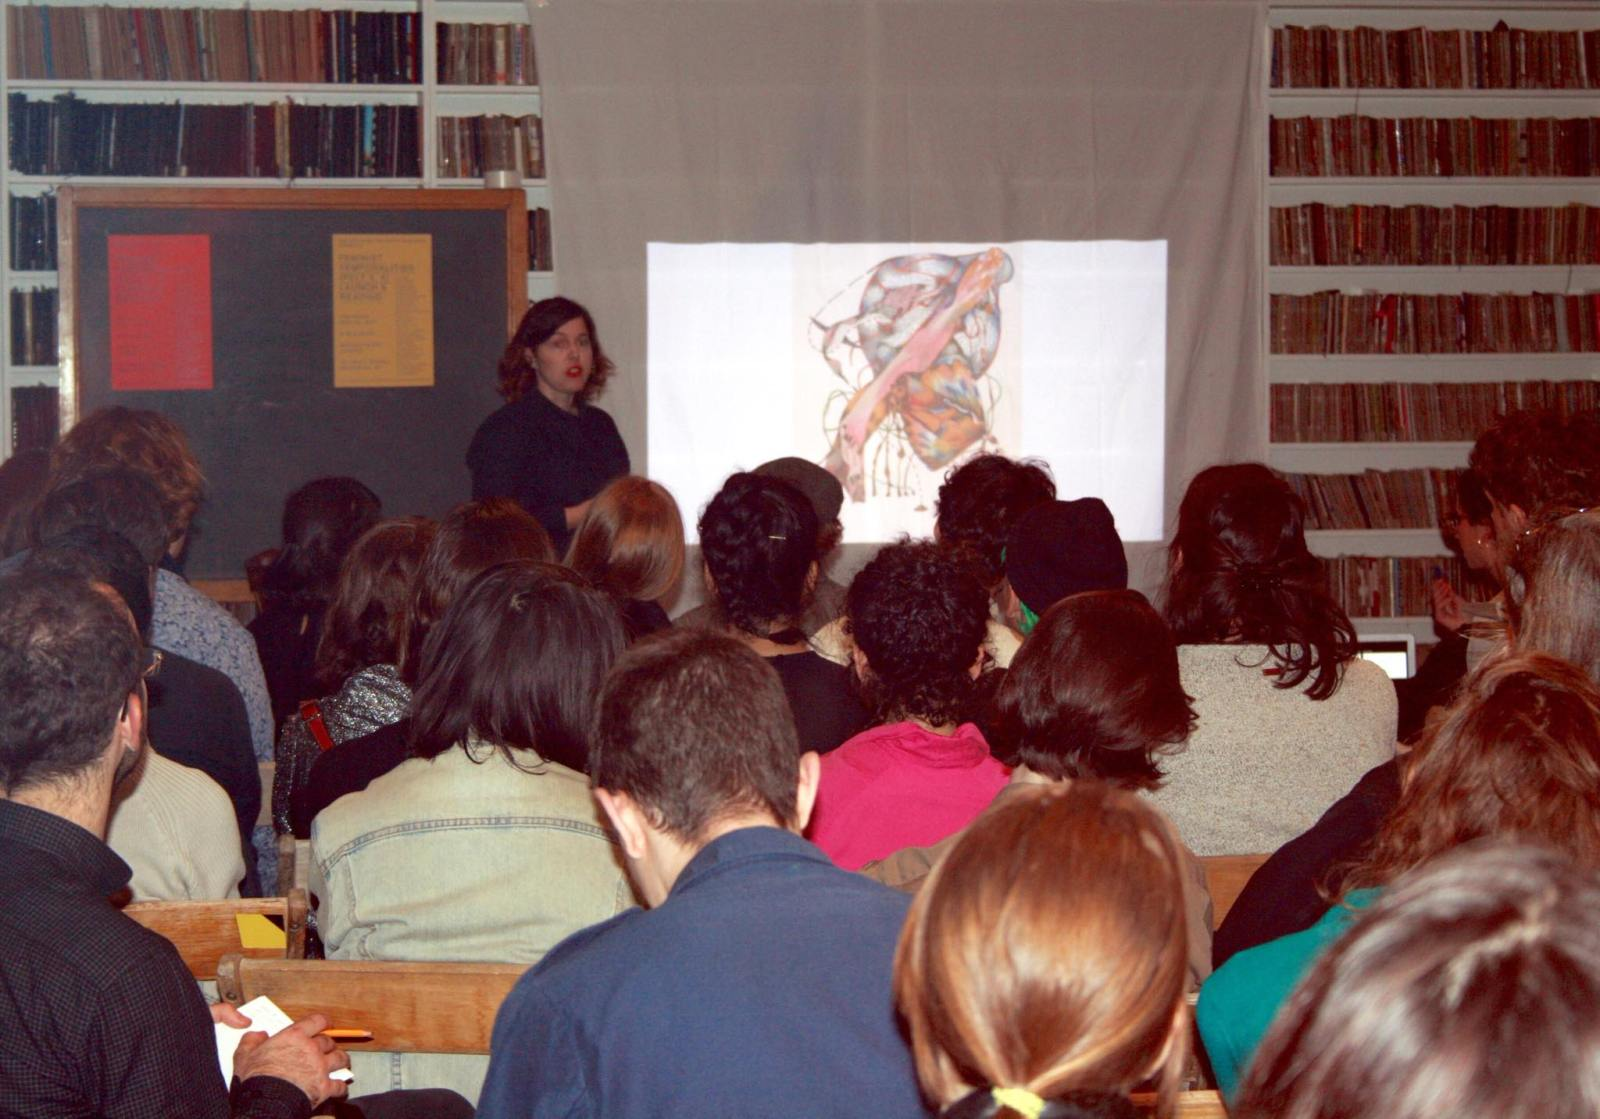 2017: Performance and update of  Sonata Bathetique in C-  to launch  Feminist Temporalities  with the   Organism for Poetic Research   at the   Brooklyn Art Library     in New York.